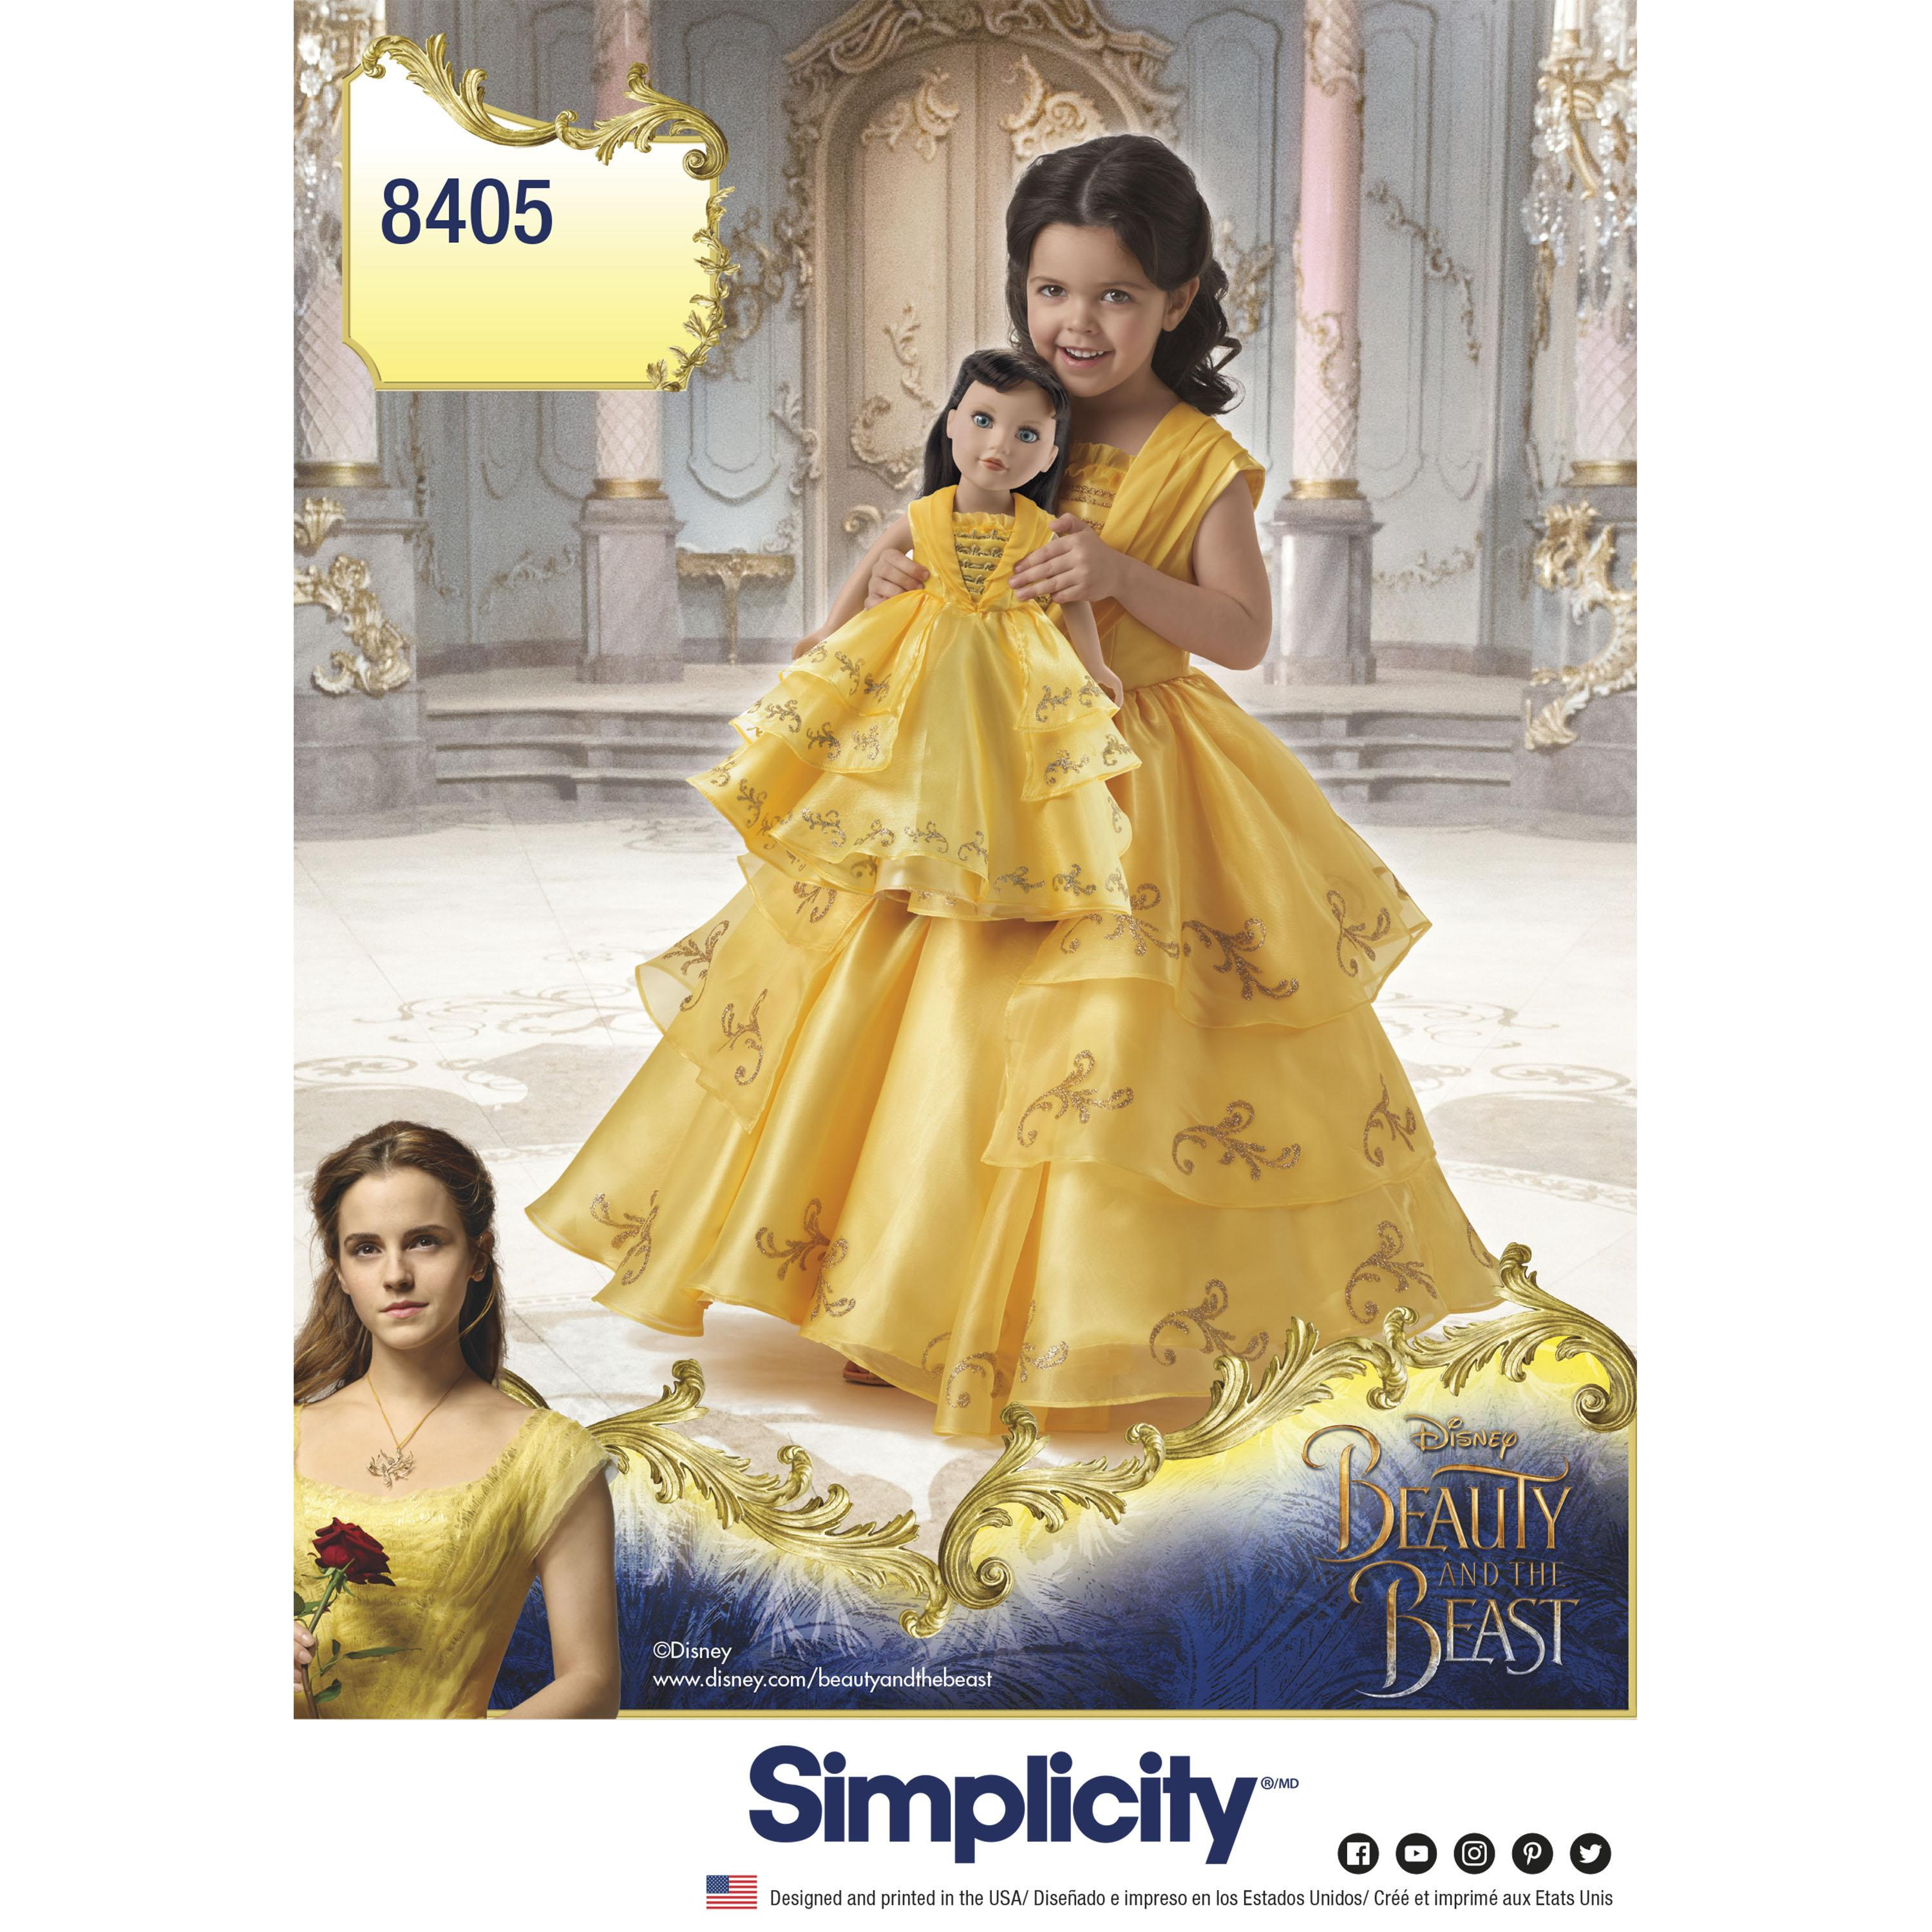 "Simplicity S8405 Disney Beauty and the Beast Costume for Child and 18"" Doll"